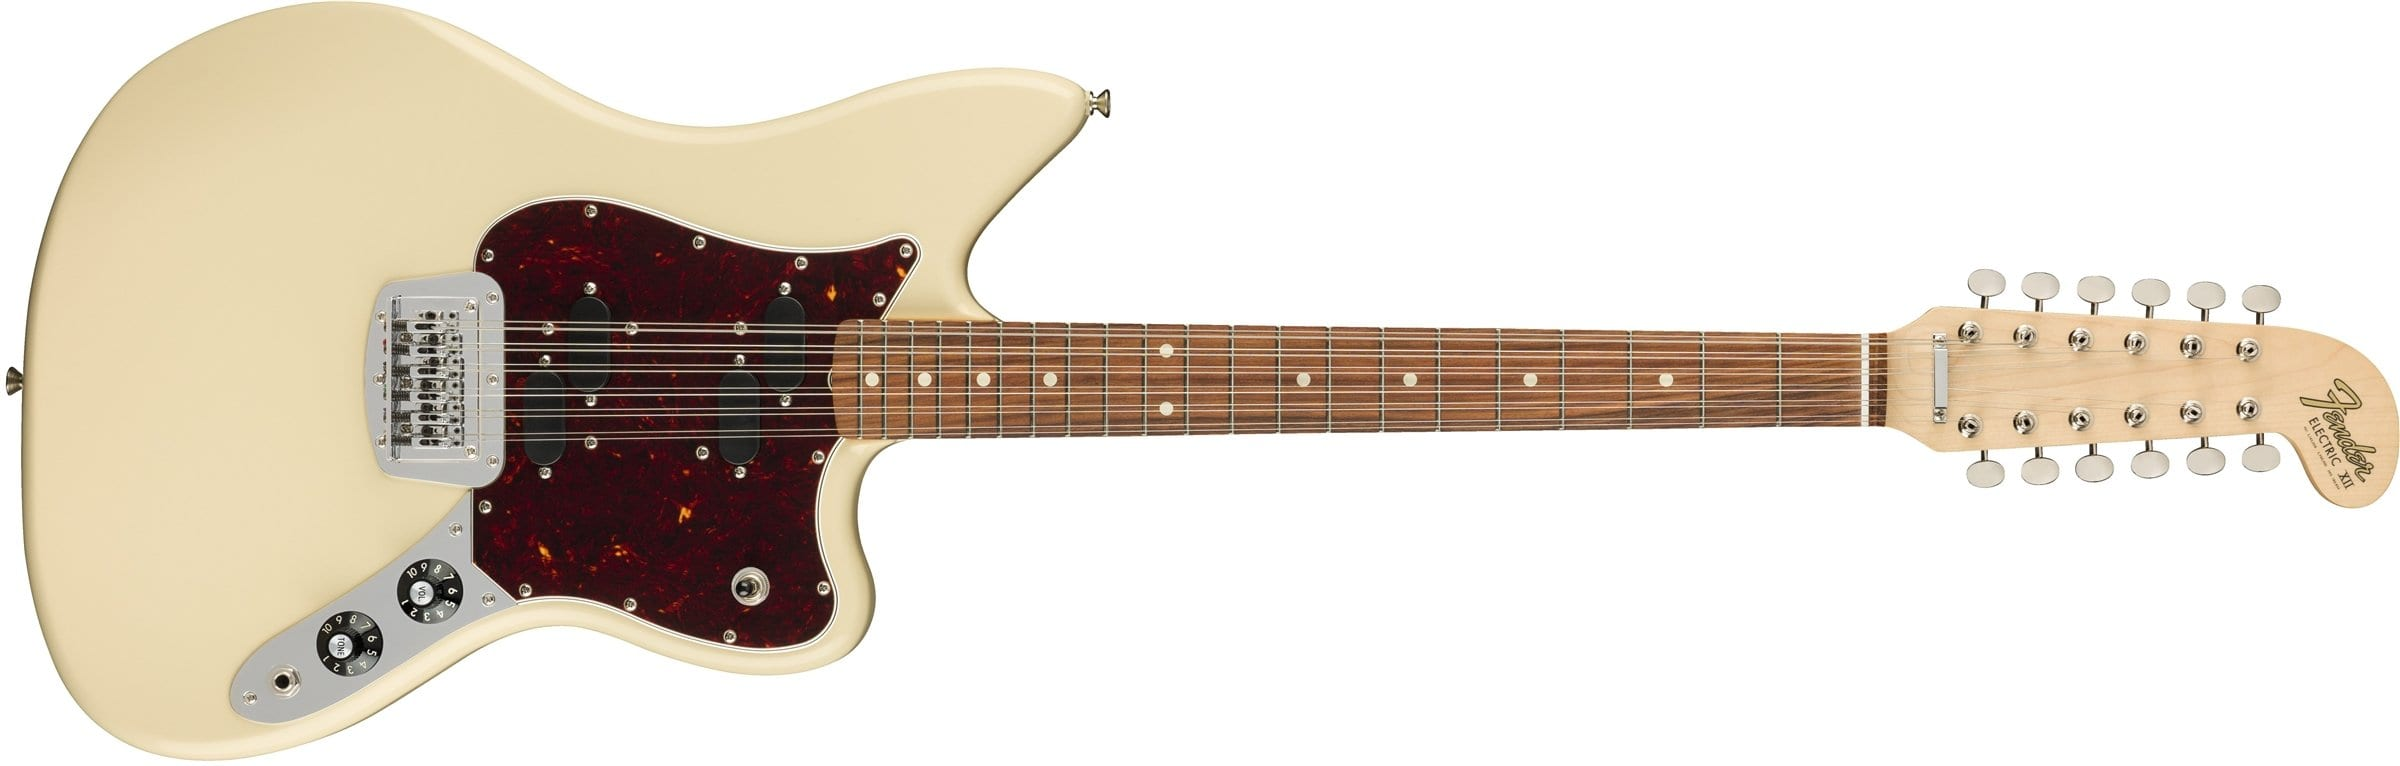 Fender Alternate Reality Electric XII Olympic White